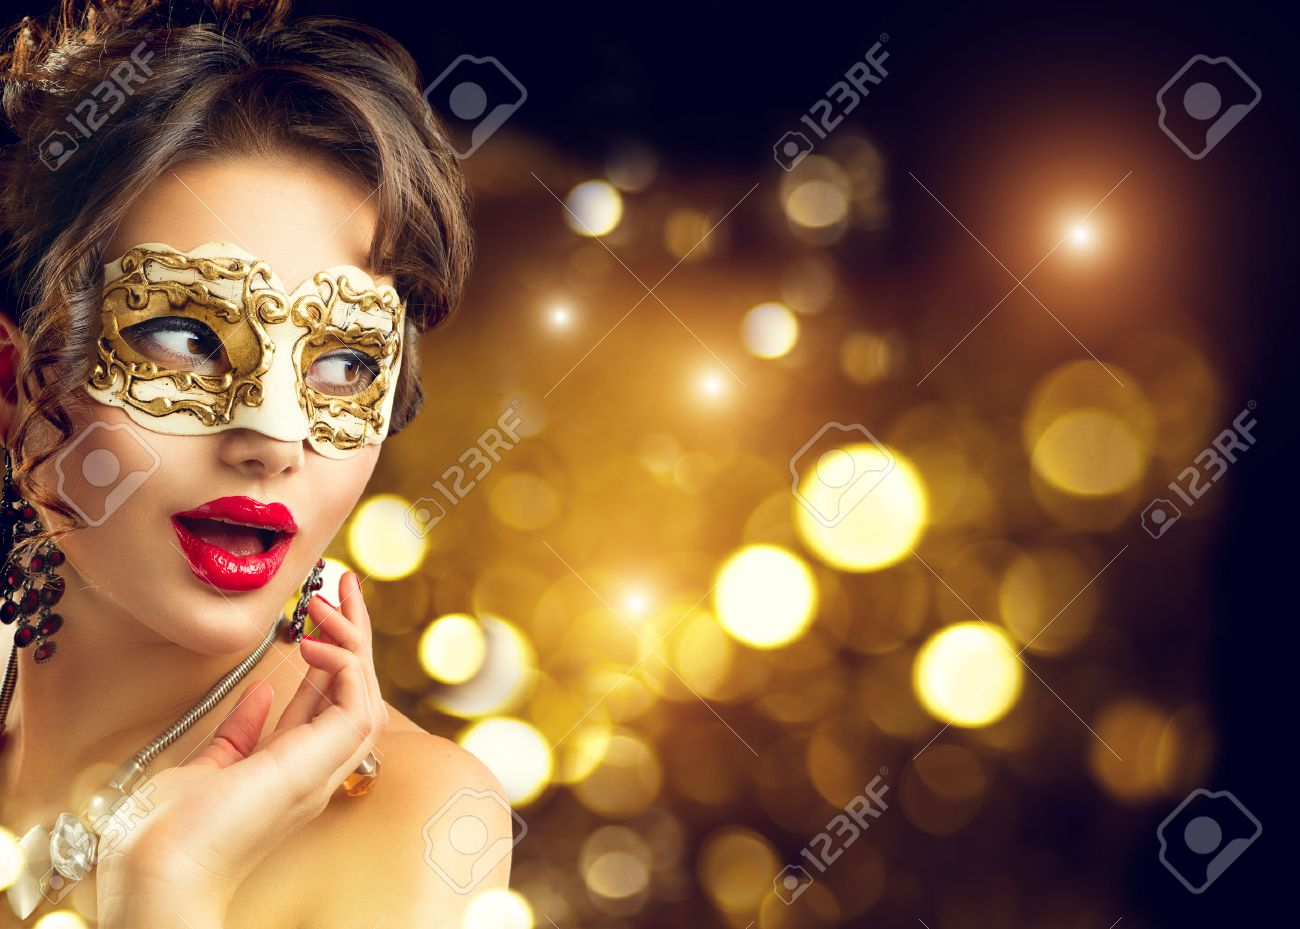 Beauty model woman wearing venetian masquerade carnival mask at party. Christmas and New Year celebration Banque d'images - 67921056